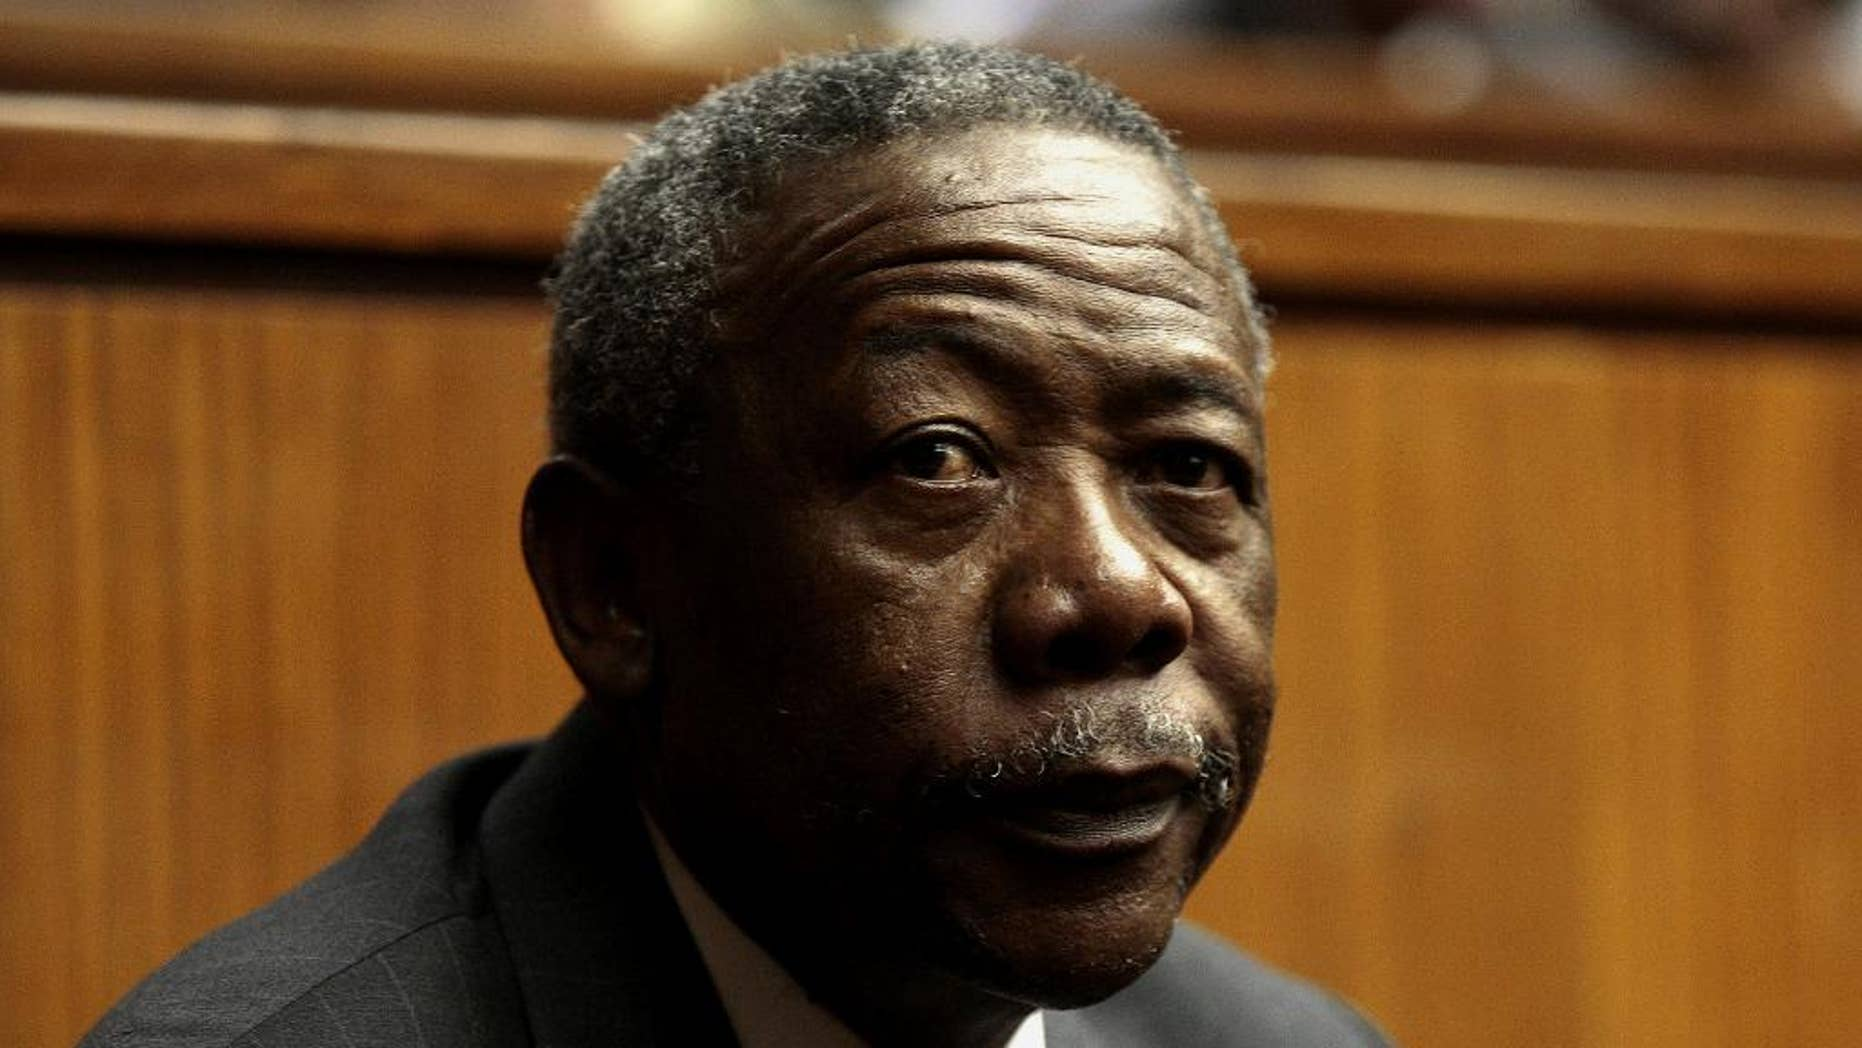 FILE - In this Tuesday, Aug. 3, 2010 file photo, South African former police commissioner Jackie Selebi attends his sentencing on corruption charges at the High Court in Johannesburg, South Africa. The family of South Africa's former national police chief, Jackie Selebi, who was disgraced after he was found guilty of corruption, said on Friday, Jan. 23, 2015 that he has died following a long illness. (AP Photo-File)